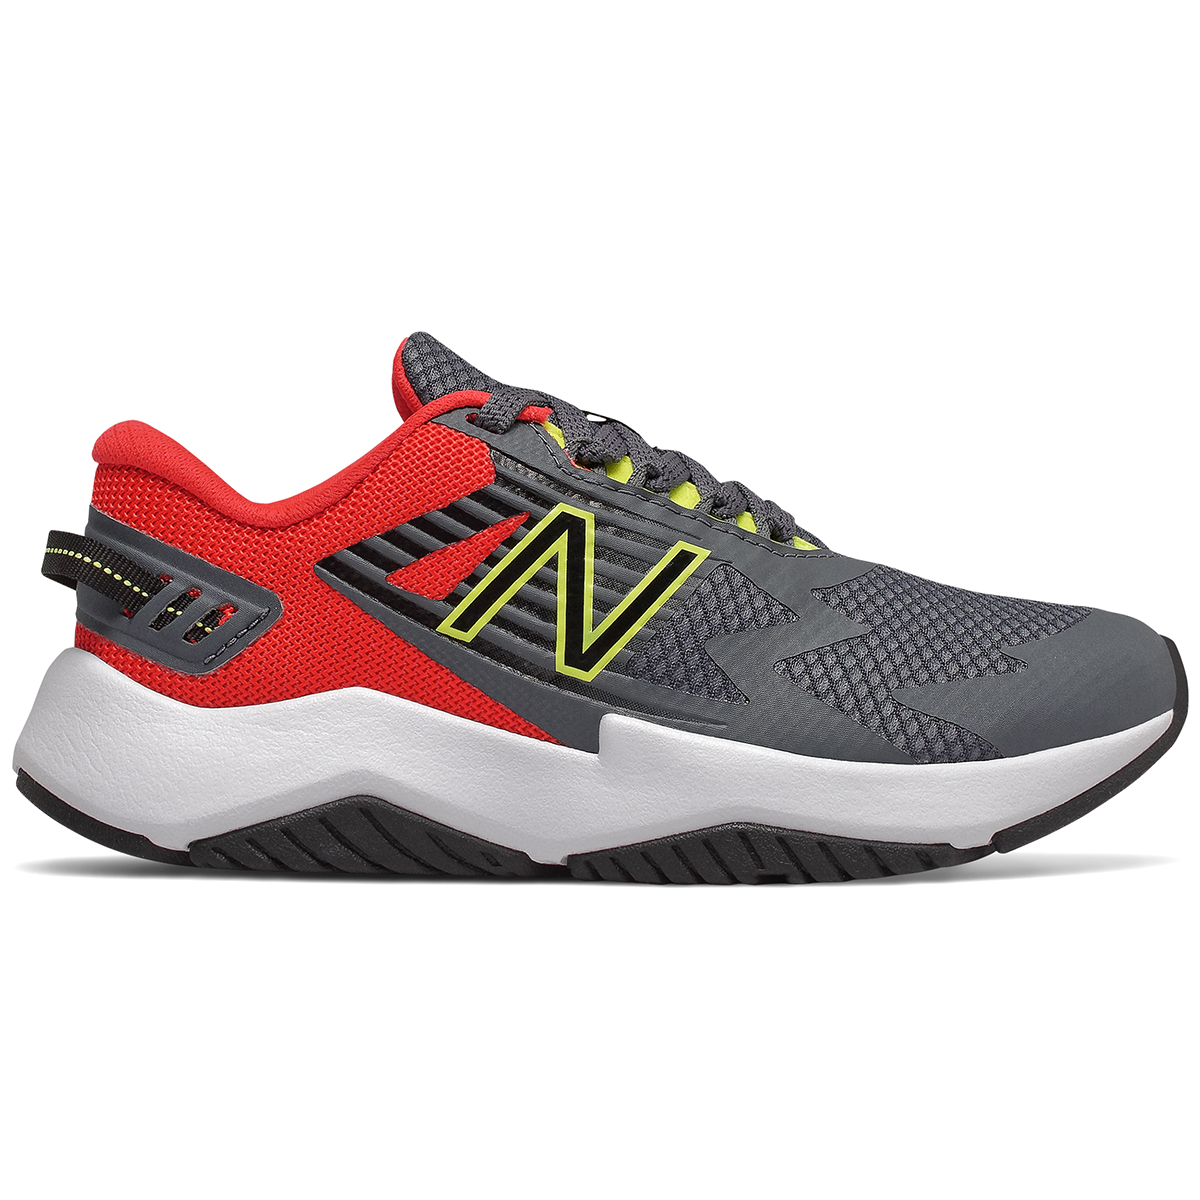 New Balance Boys' Rave Running Sneakers - Black, 3.5